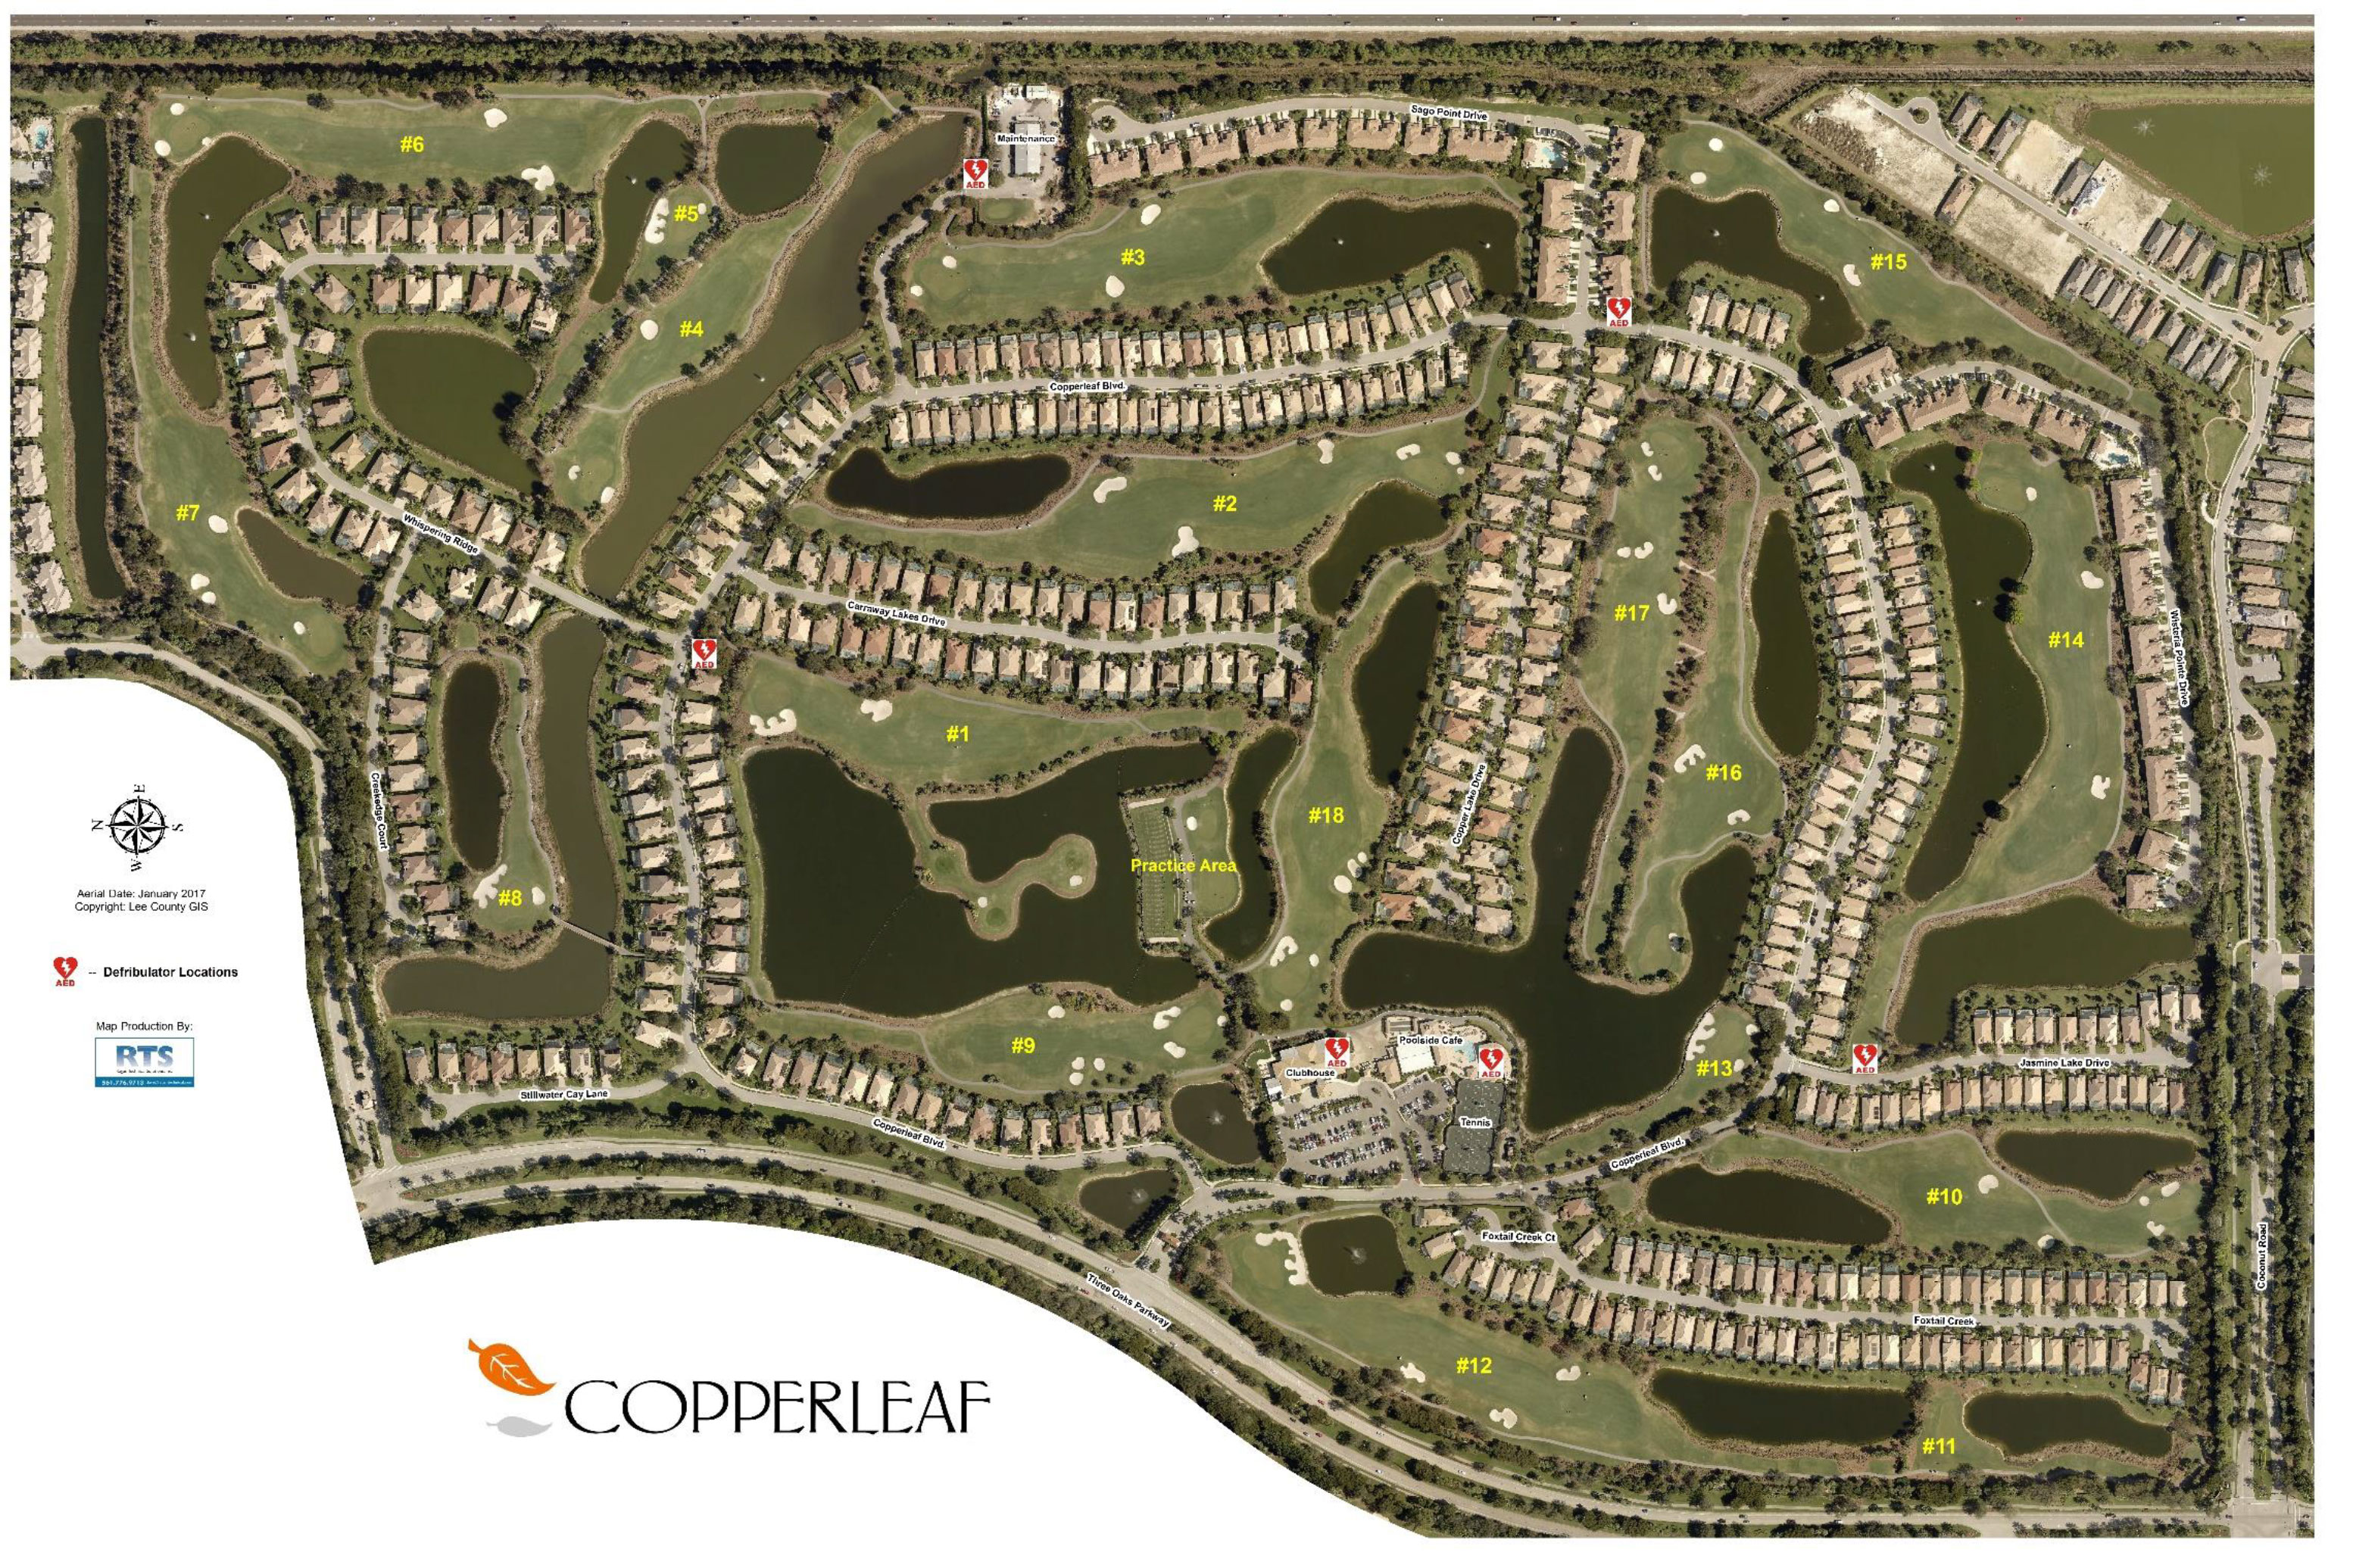 Copperleaf Map